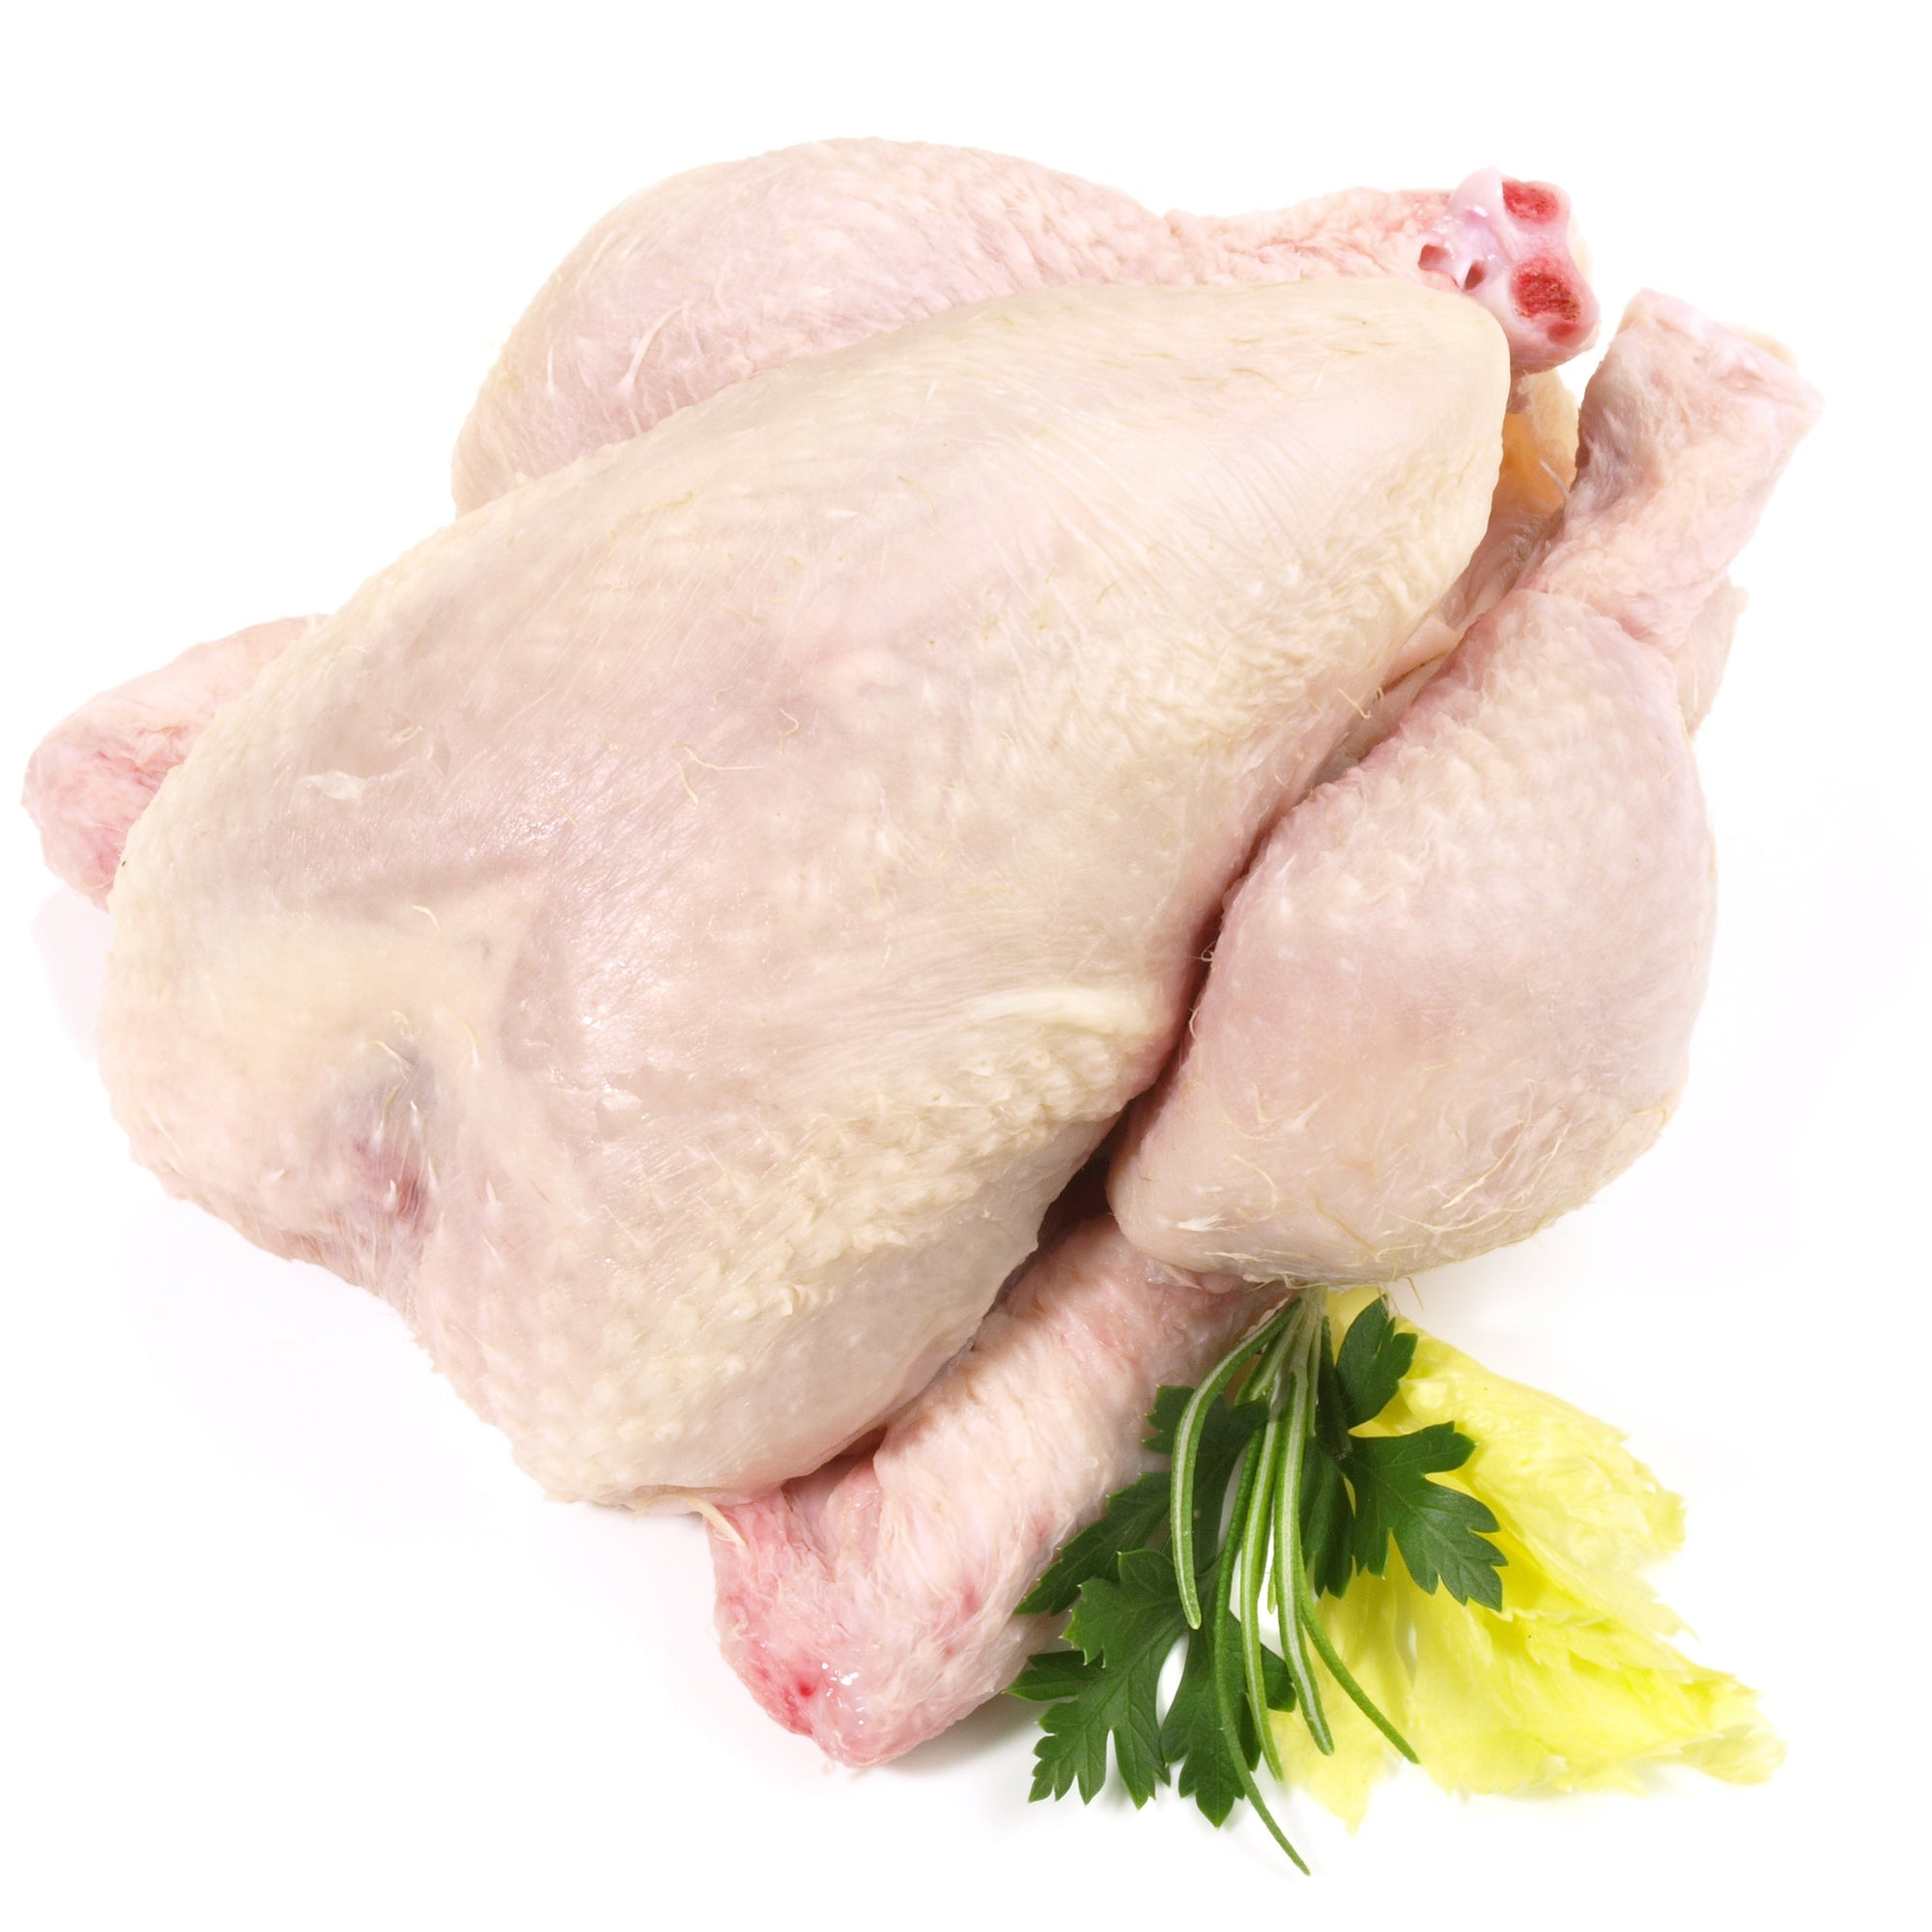 FRESH WHOLE SPRING CHICKEN